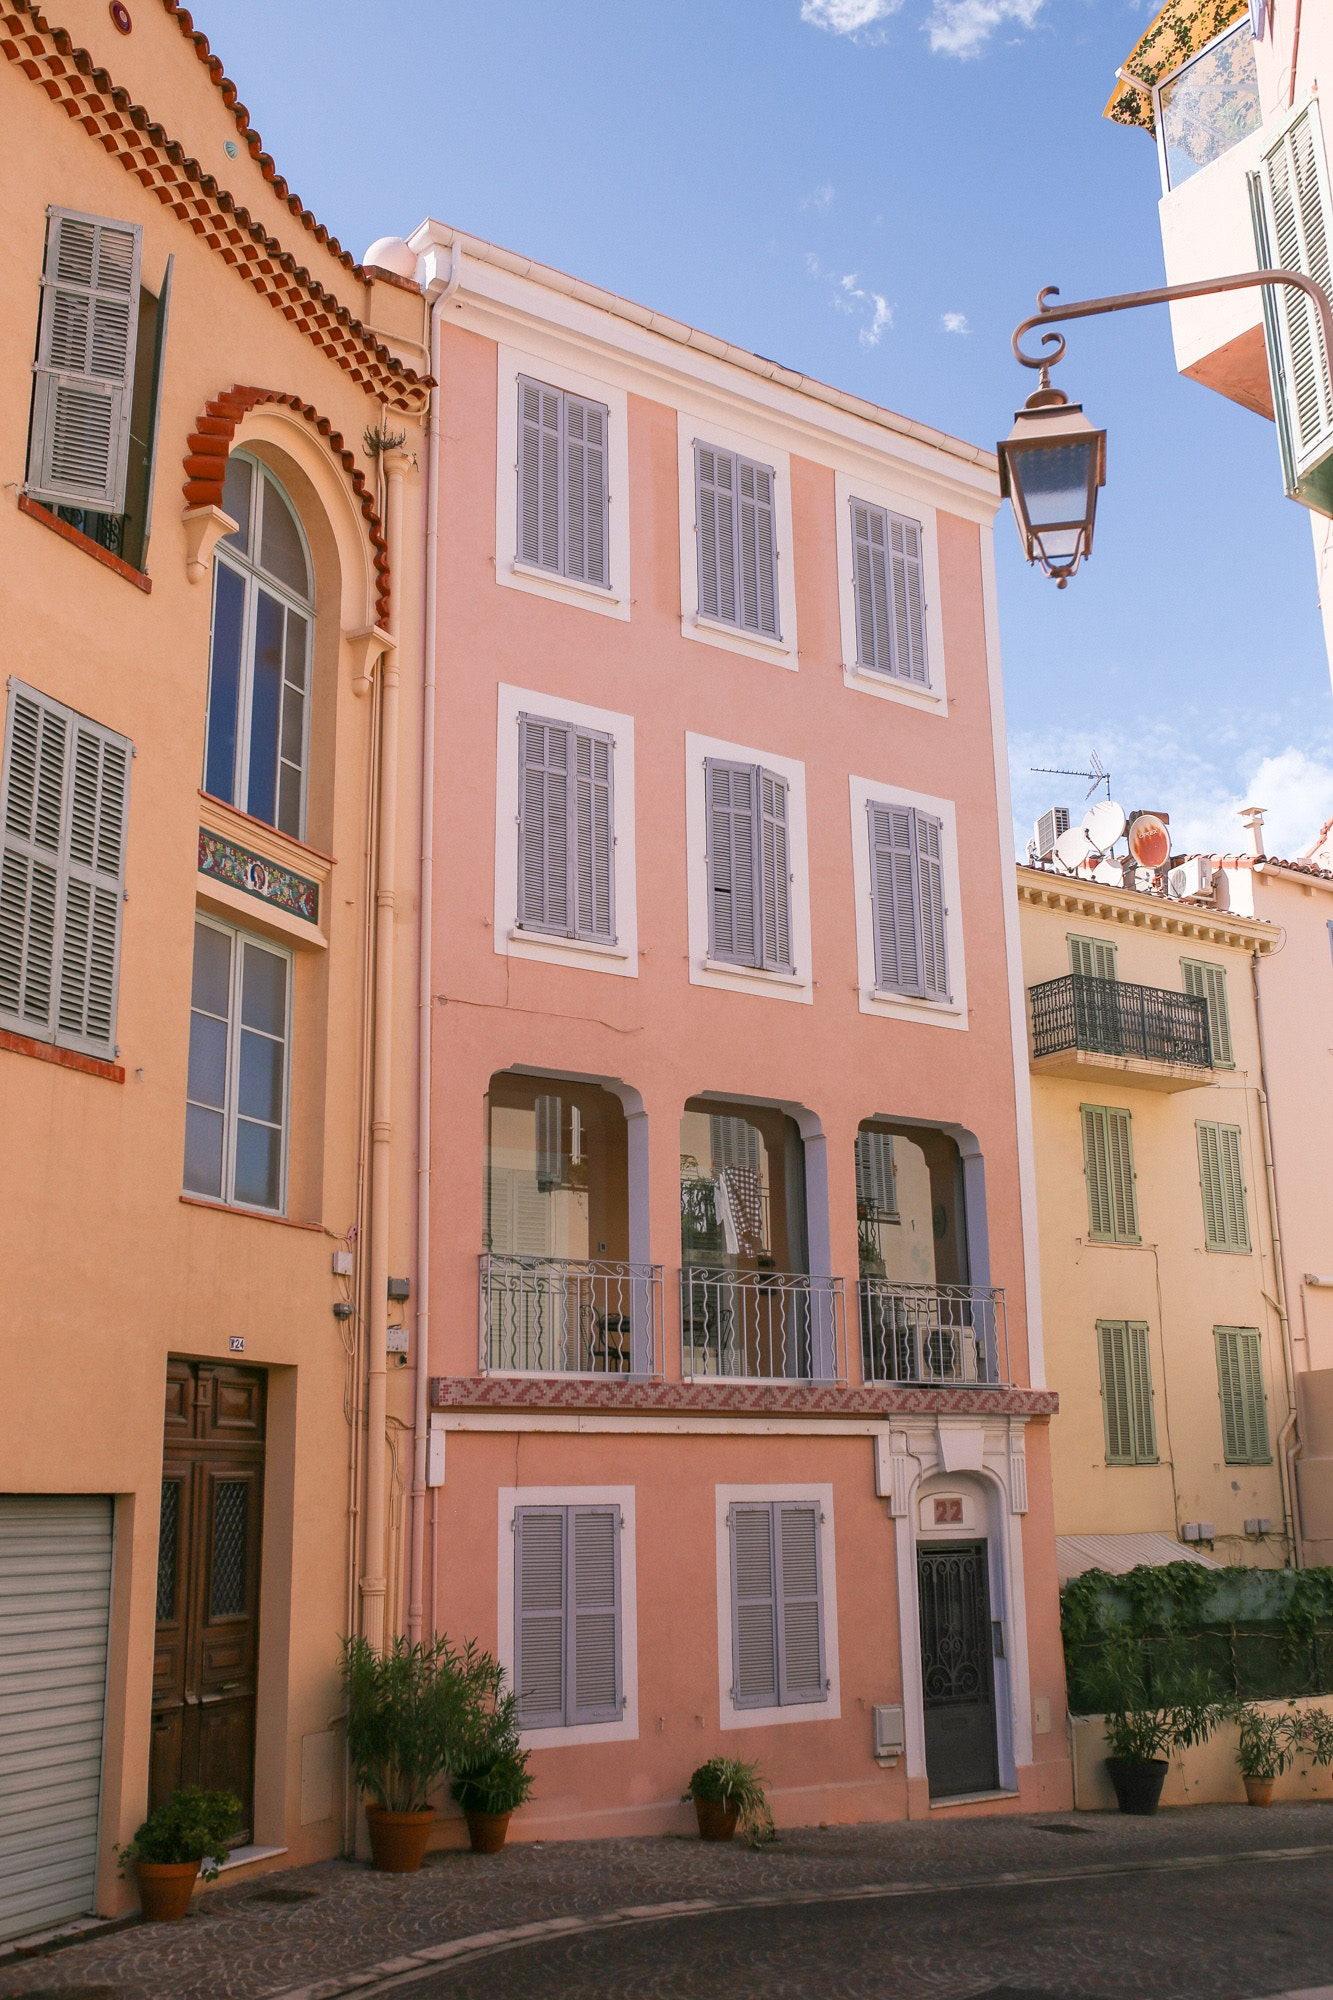 Colourful houses in Le Suquet, Cannes